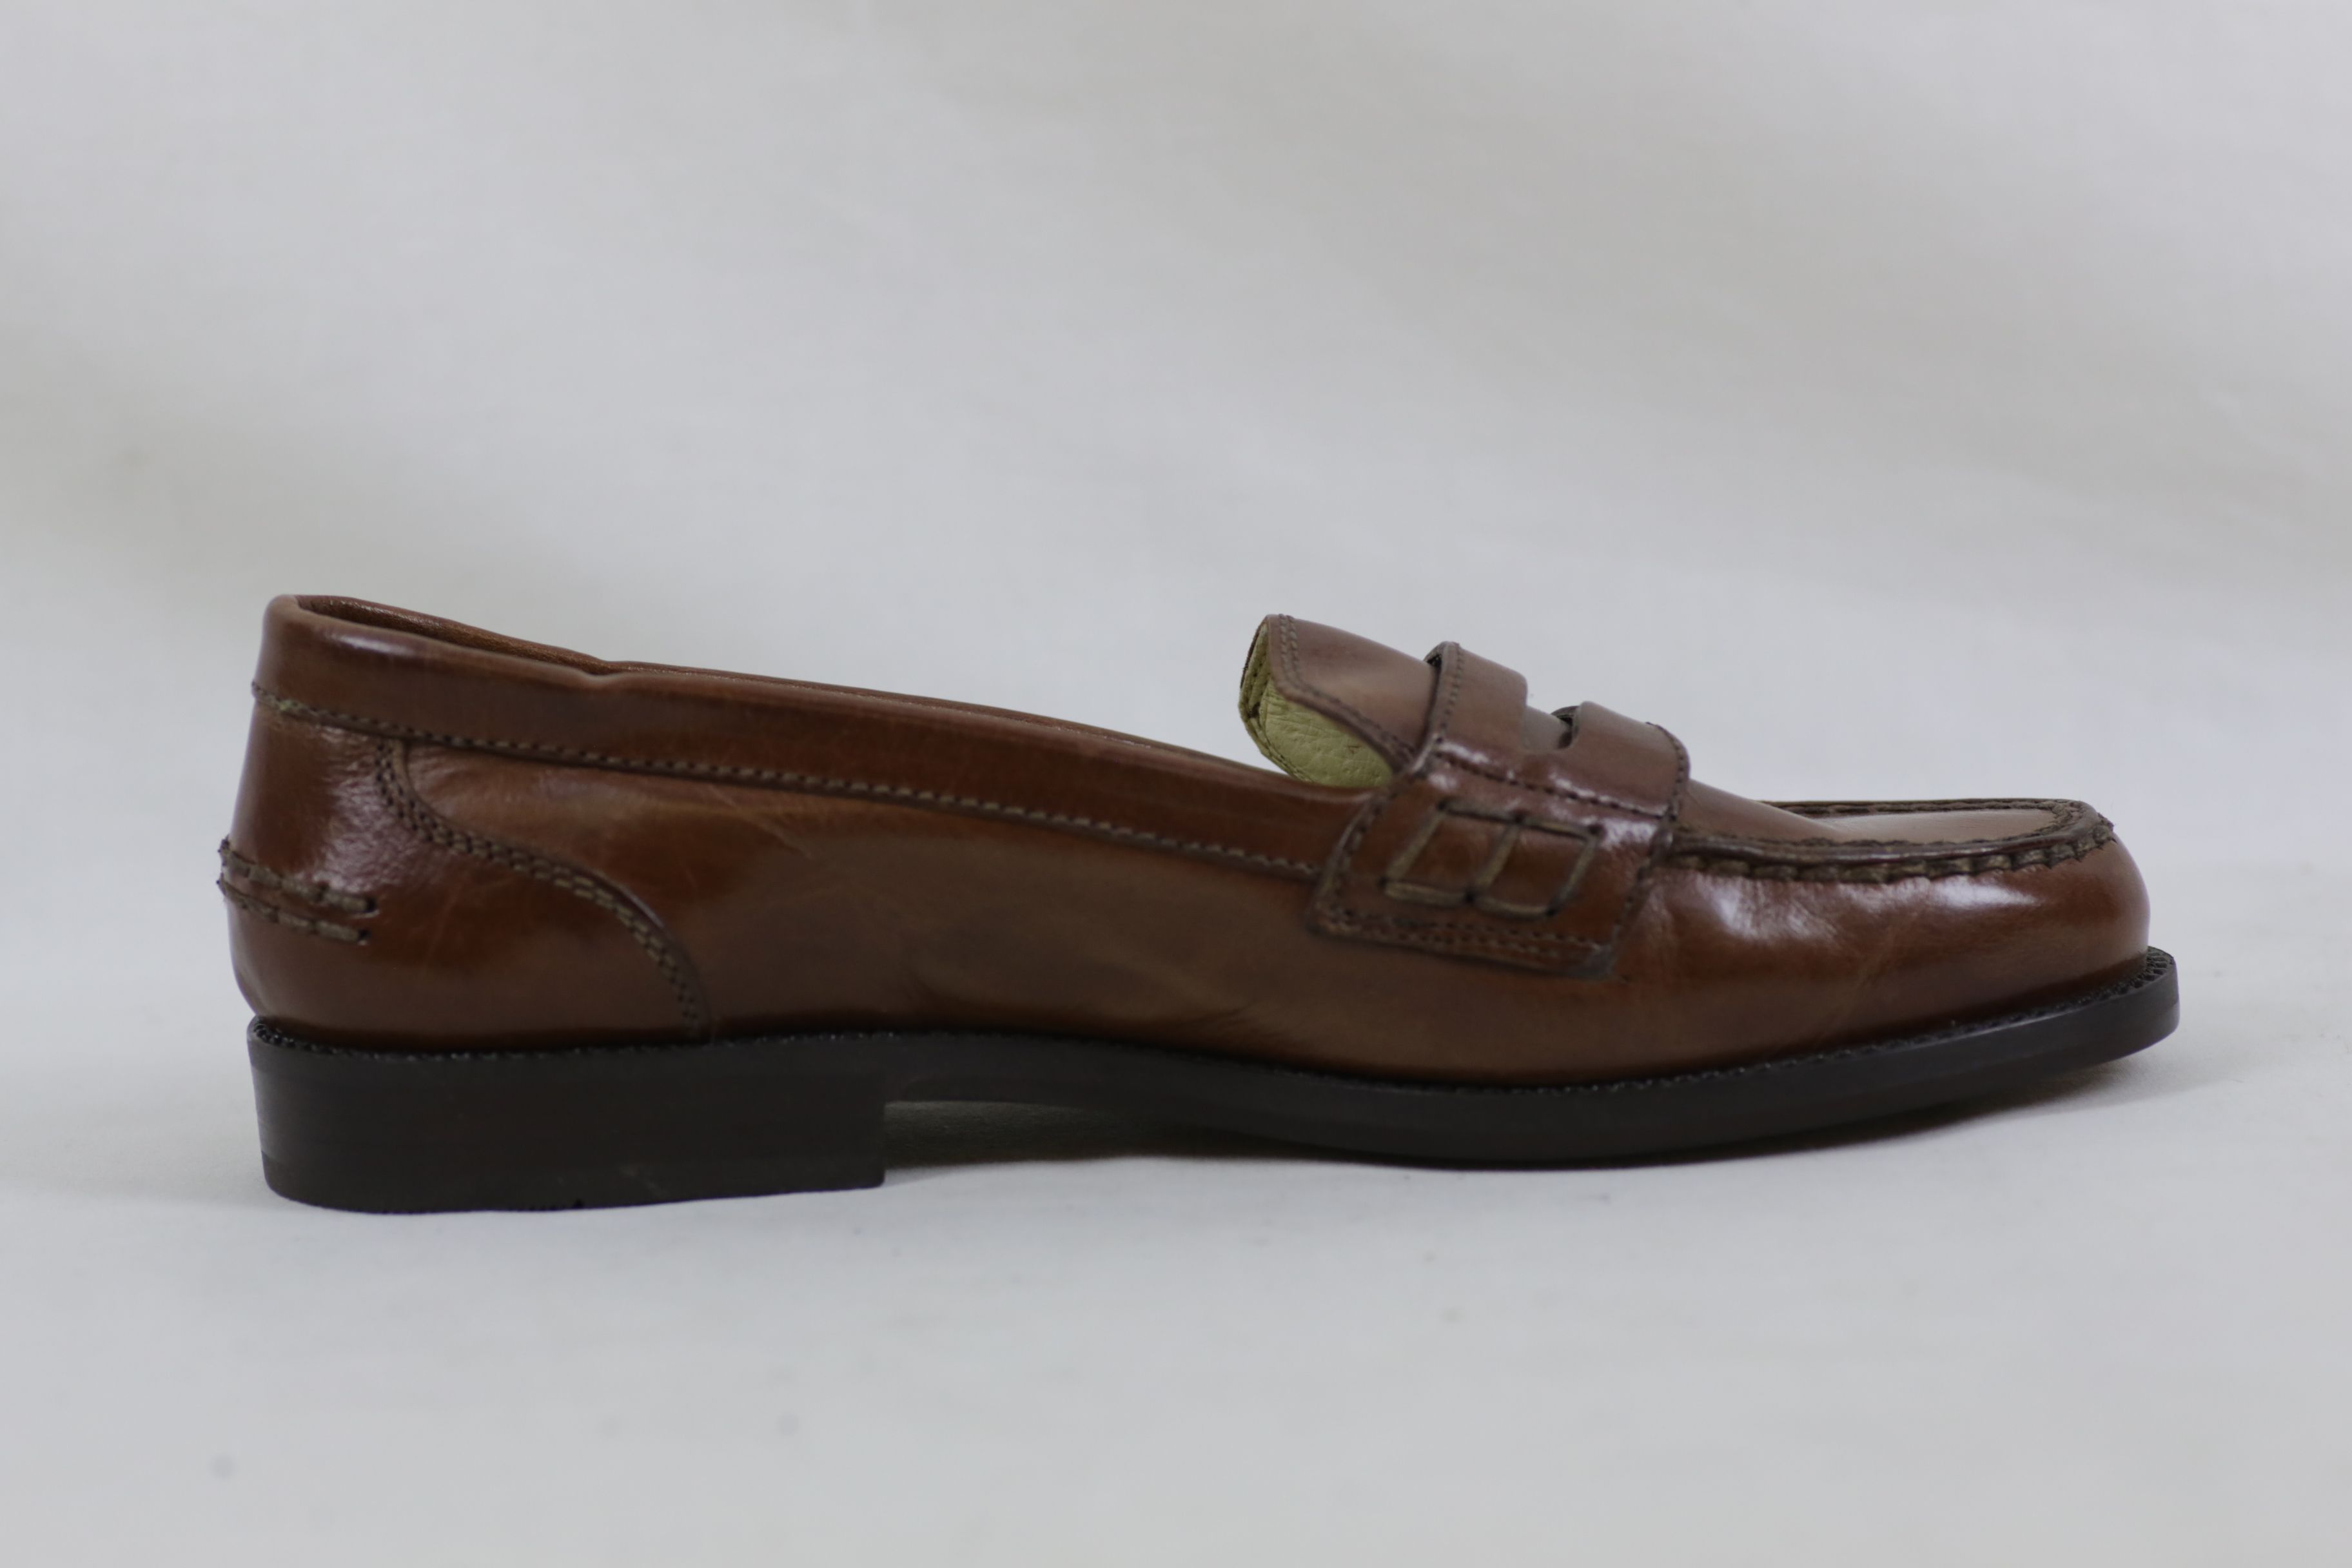 Bally Brim Classic Mid Brown Leather Shoes / Loafers - Size EU 36.5 UK 3.5 5